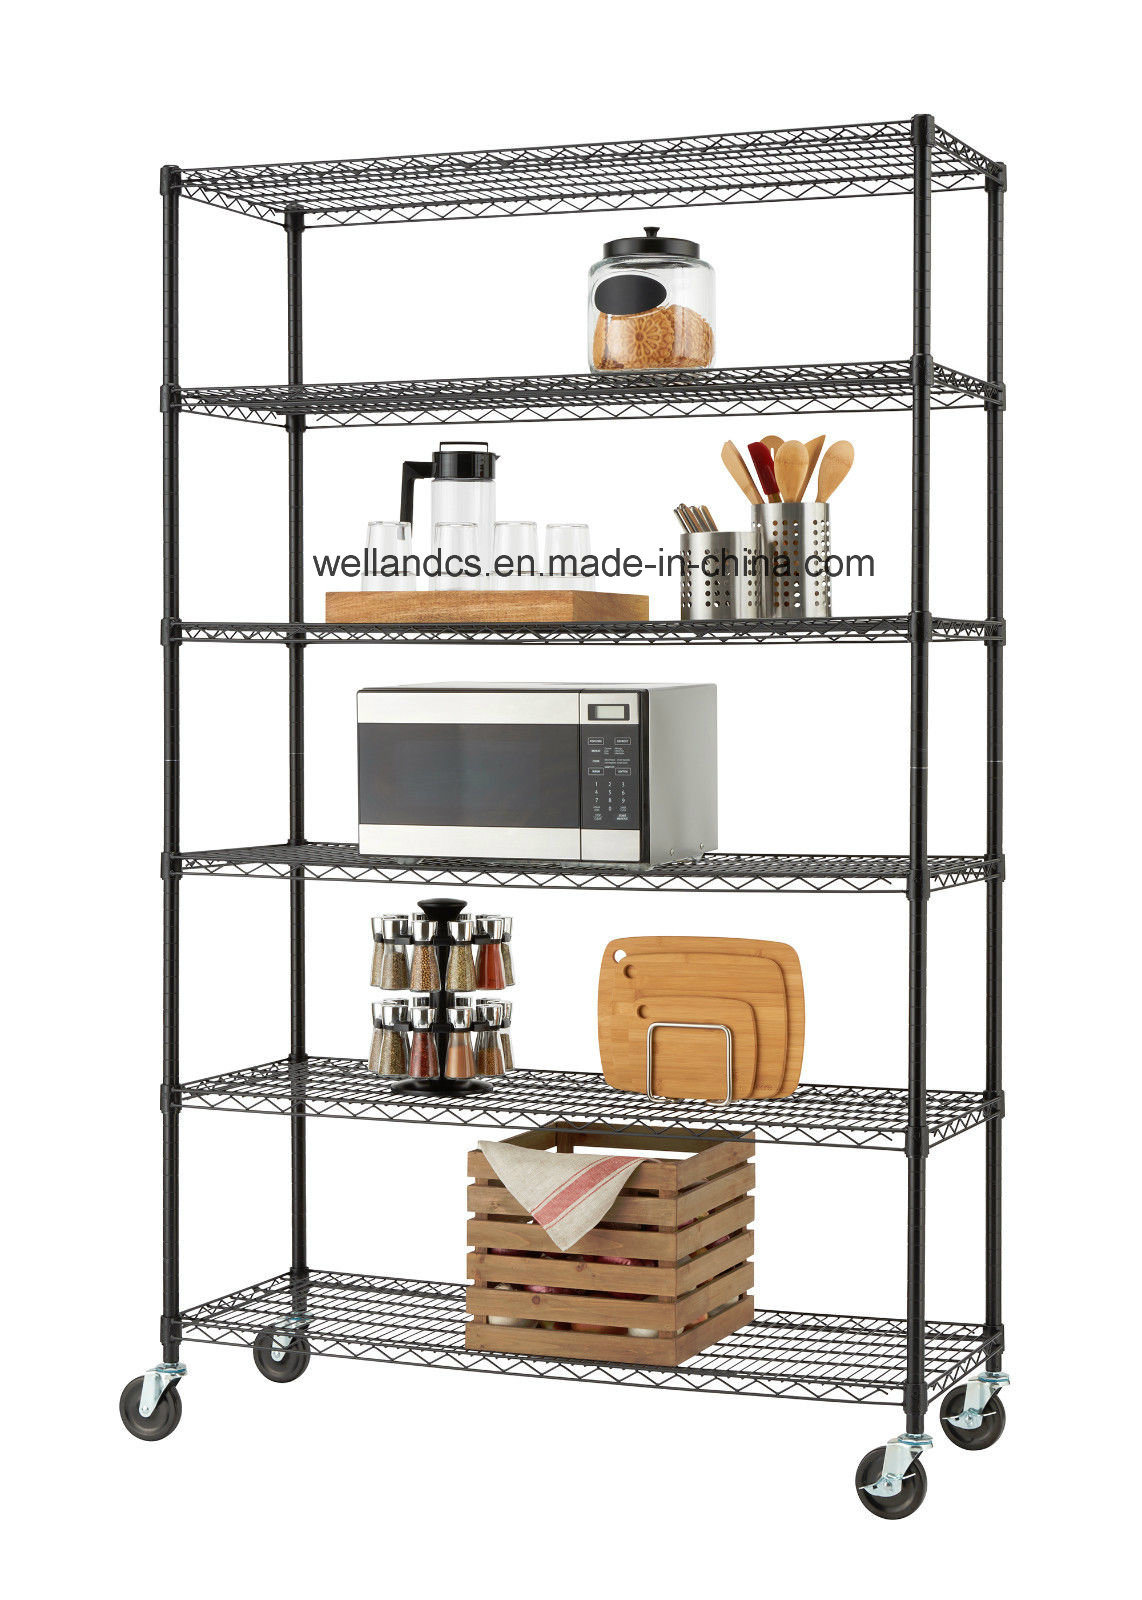 Mobile Wire Rack | China Mobile 6 Shelf Heavy Duty Industrial Kitchen Equipment Metal